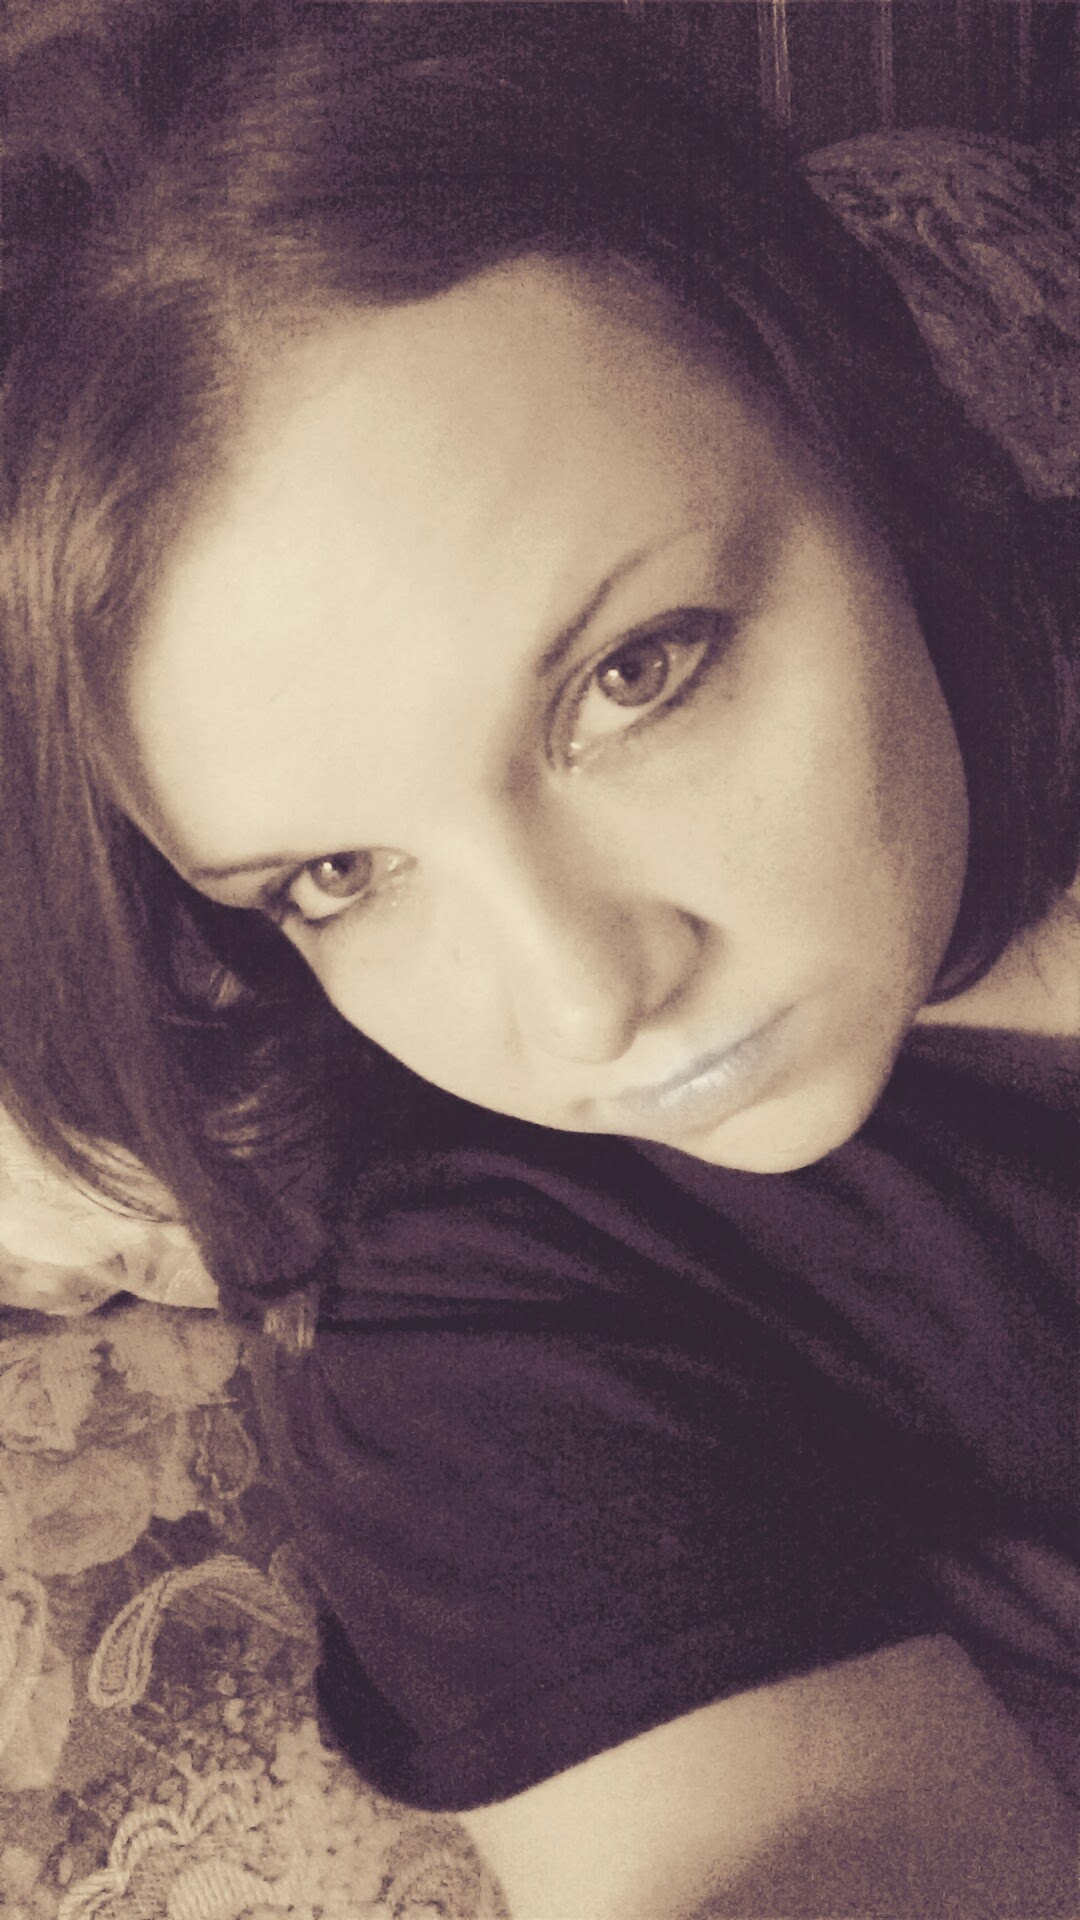 single women in greeneville Meet beautiful greeneville coast guard women today on militarysinglescom start getting to know each other on video chat, im and more join now.